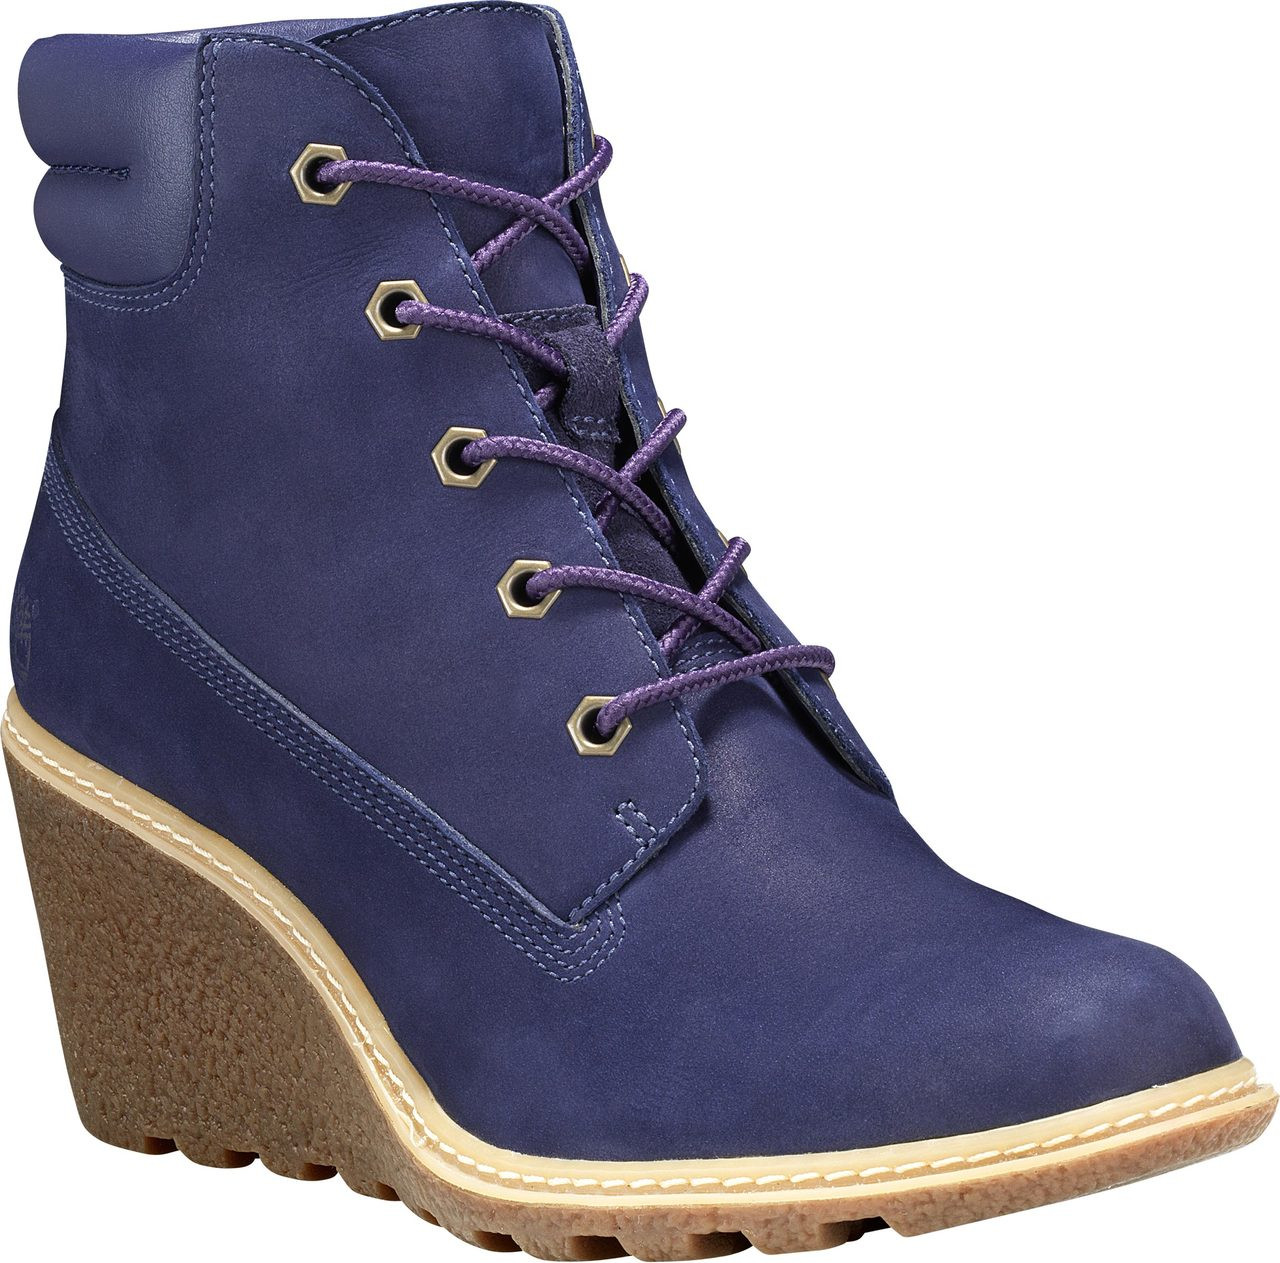 Boots; Timberland Women's Amston 6Inch  Dark Blue Nubuck